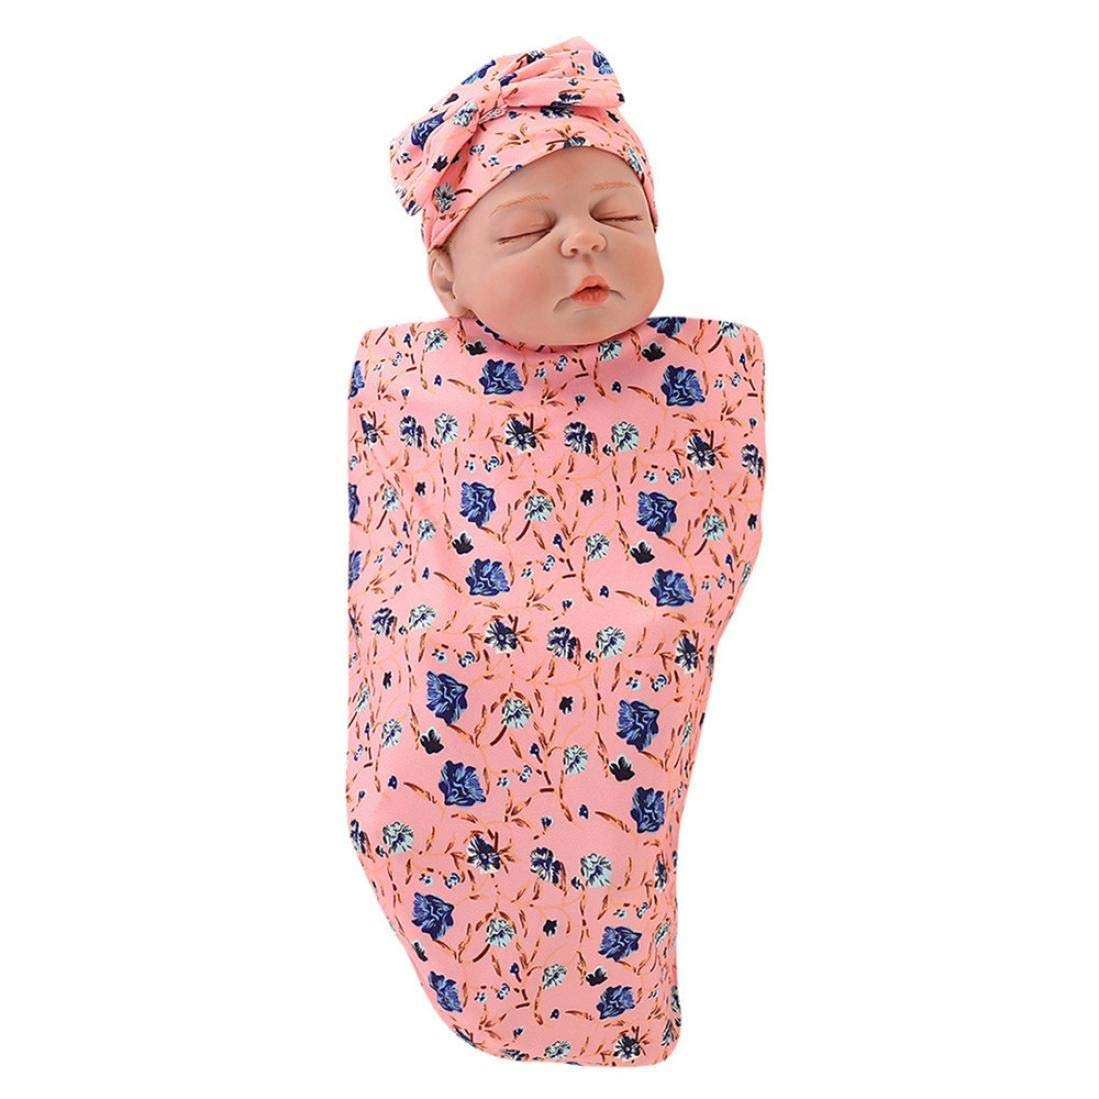 Soft Cotton Newborn Infant Baby Muslin Swaddle Sleeping Blanket Wrap Bath Towel